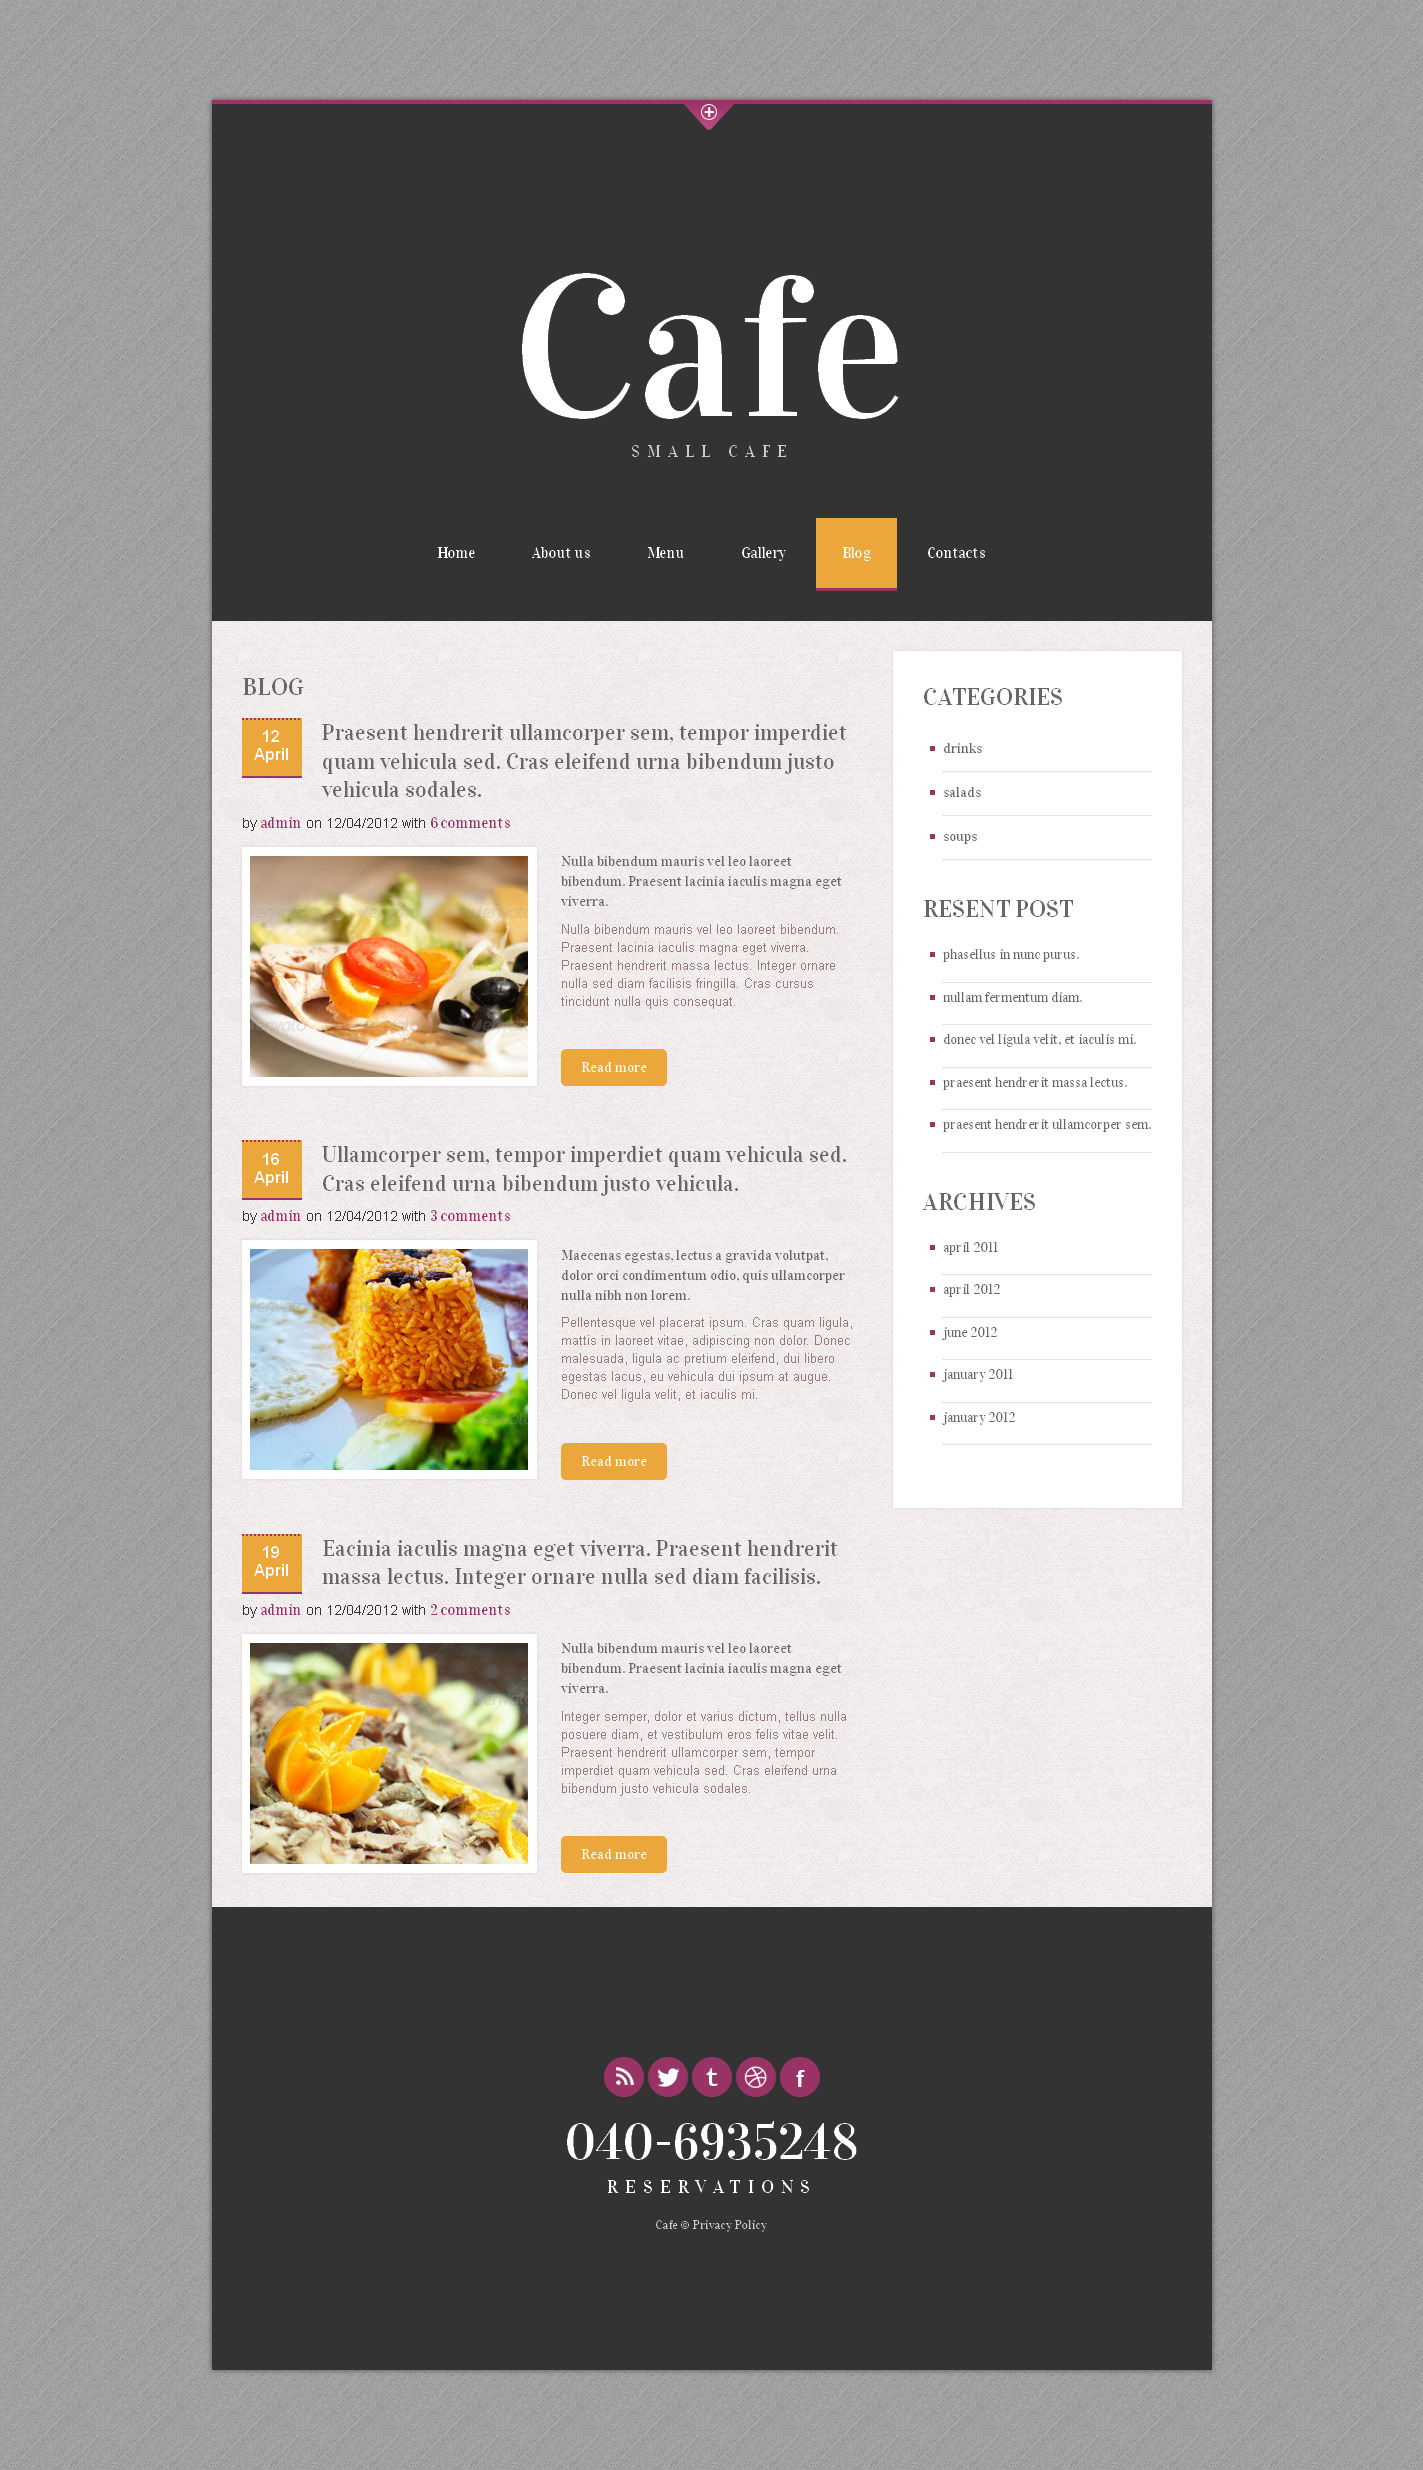 Cafe - Responsive Restaurant Website Template